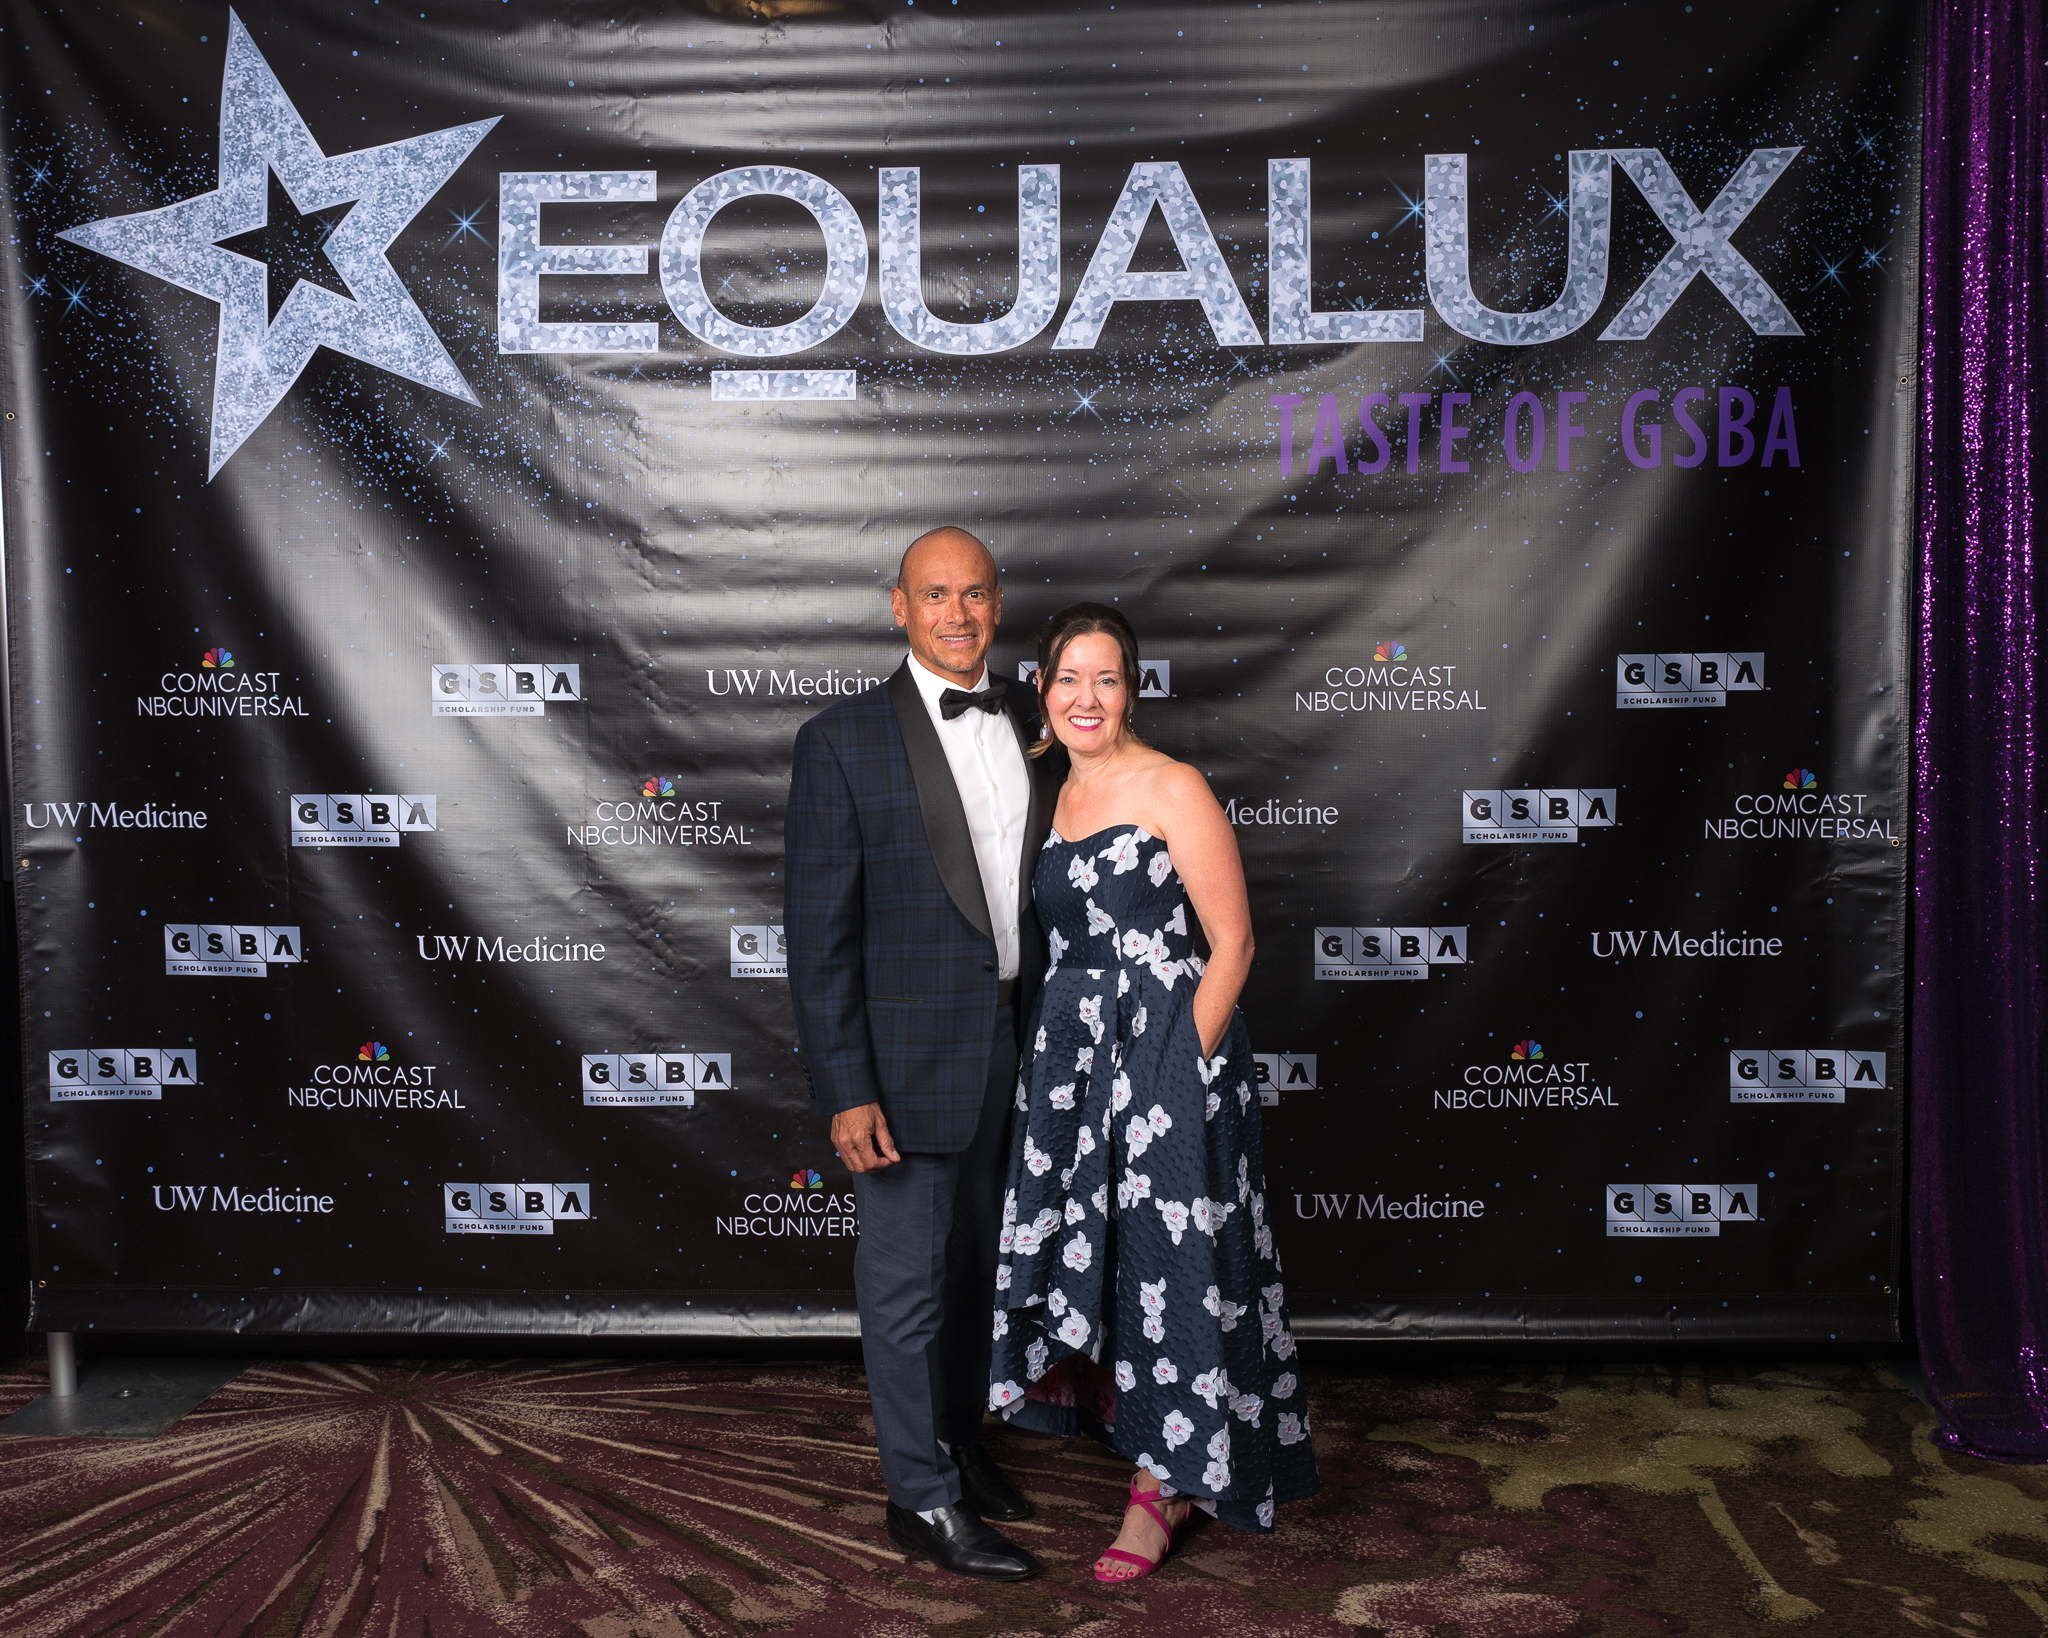 111718_GSBA EQUALUX at The Westin Seattle (Credit- Nate Gowdy)-16.jpg